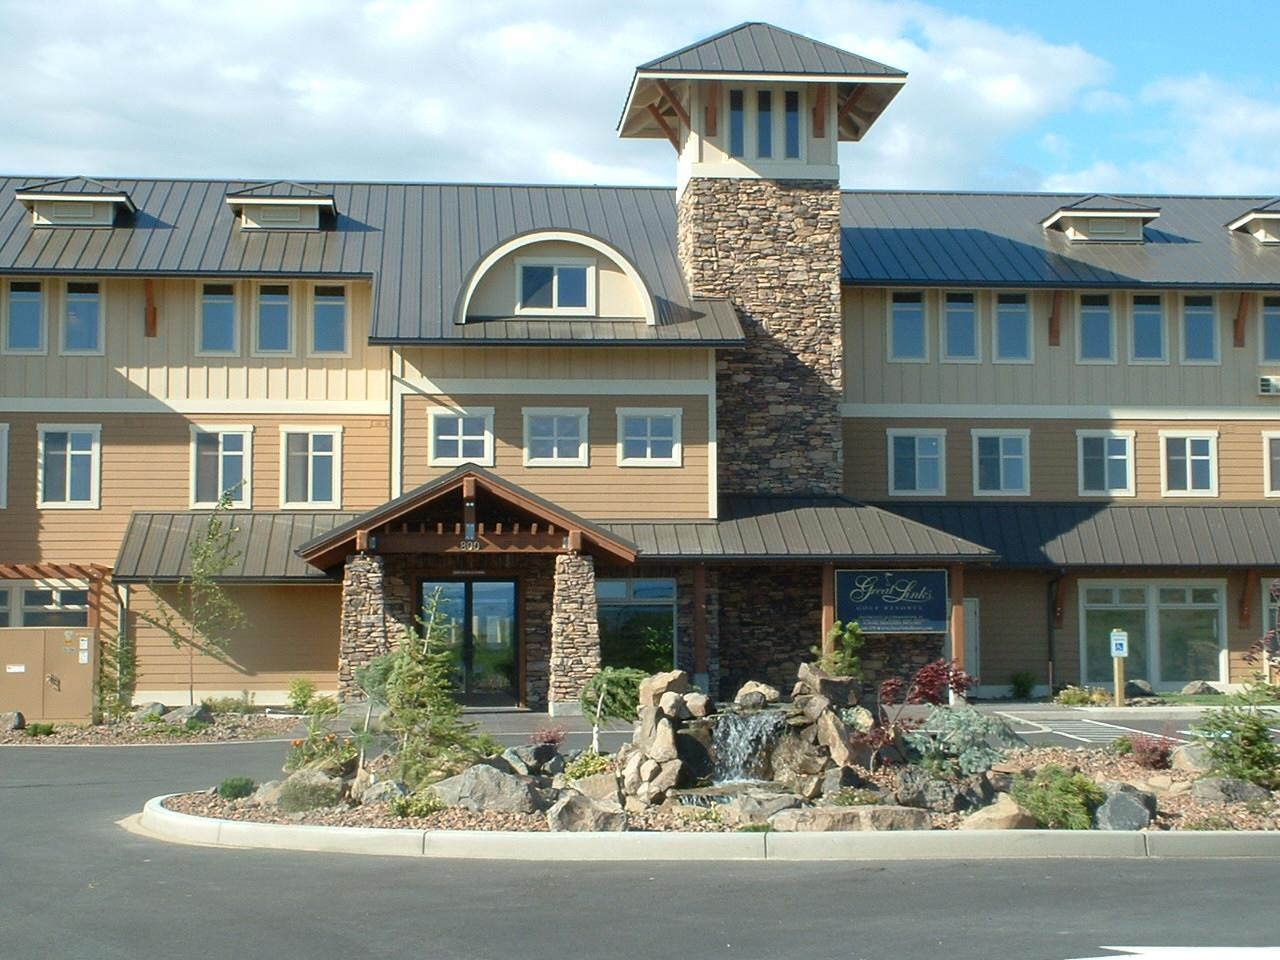 The Lodge at Desert Canyon